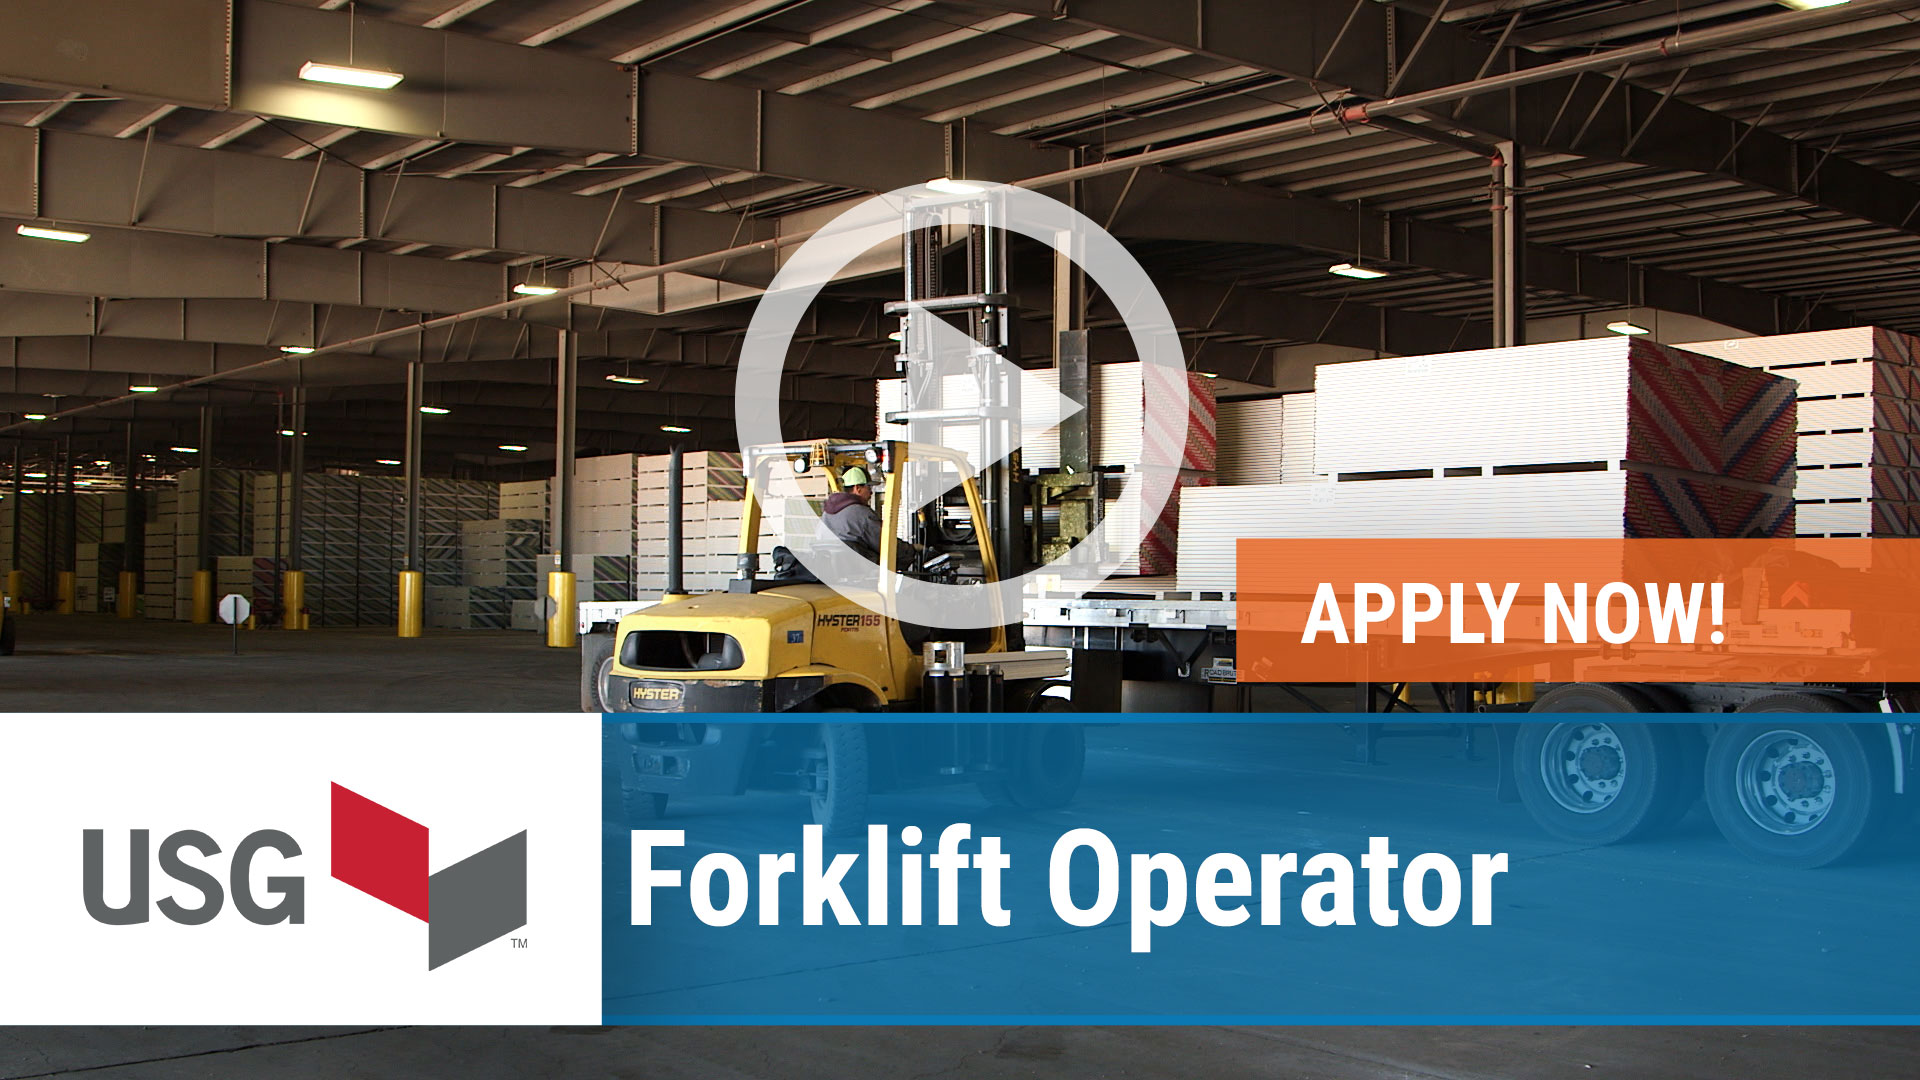 Watch our careers video for available job opening Forklift Operator in East Chicago, IN, USA